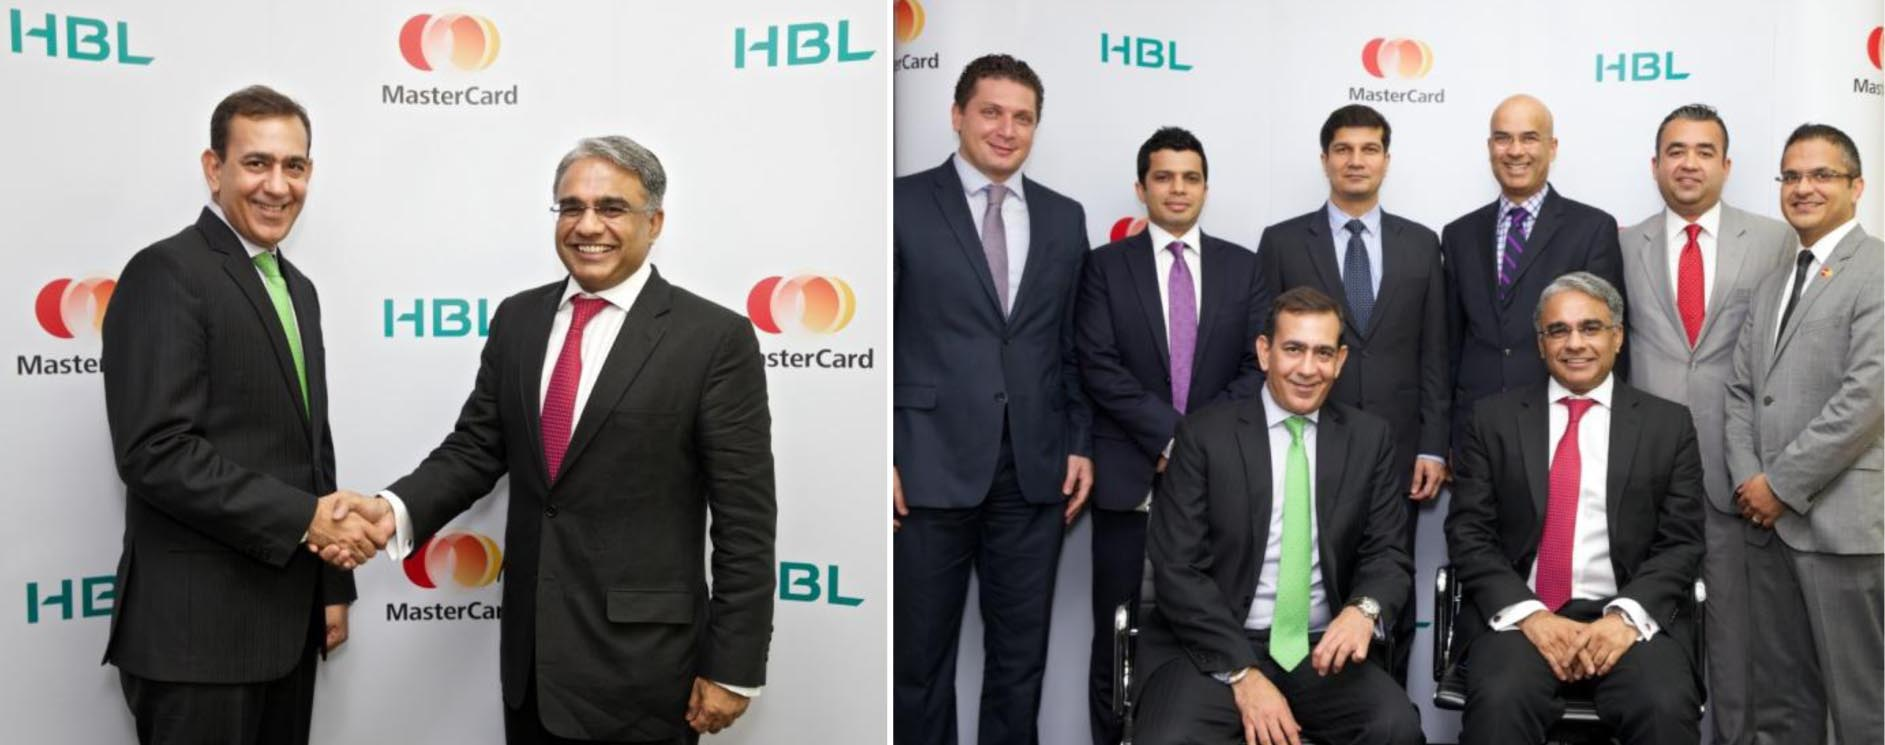 HBL MasterCard Press Release (final draft)-1